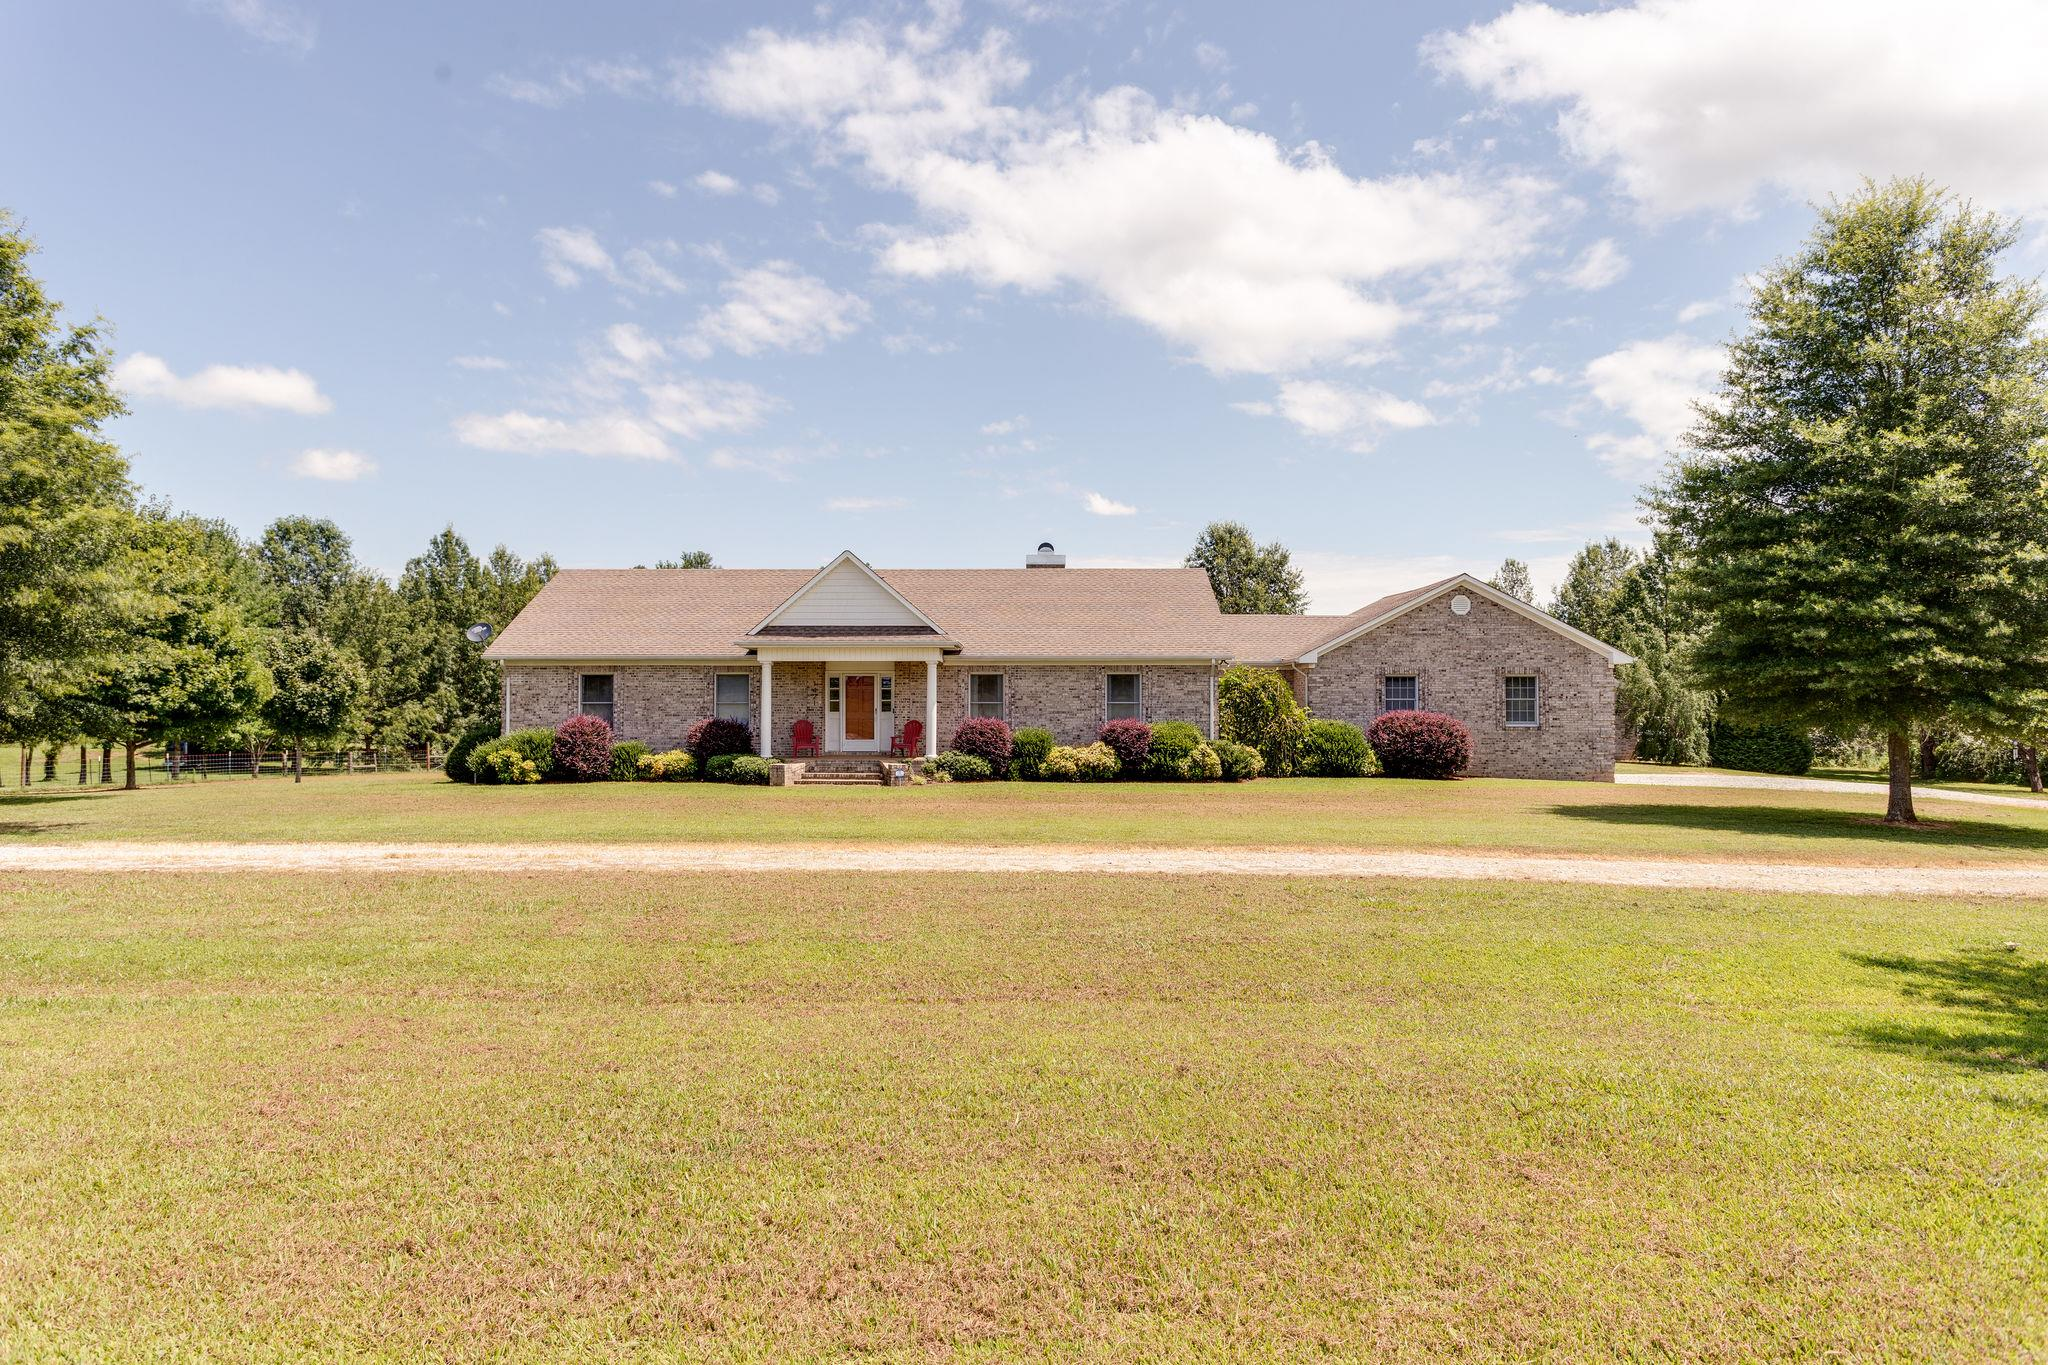 1421 Marable Rd, Lawrenceburg, TN 38464 - Lawrenceburg, TN real estate listing